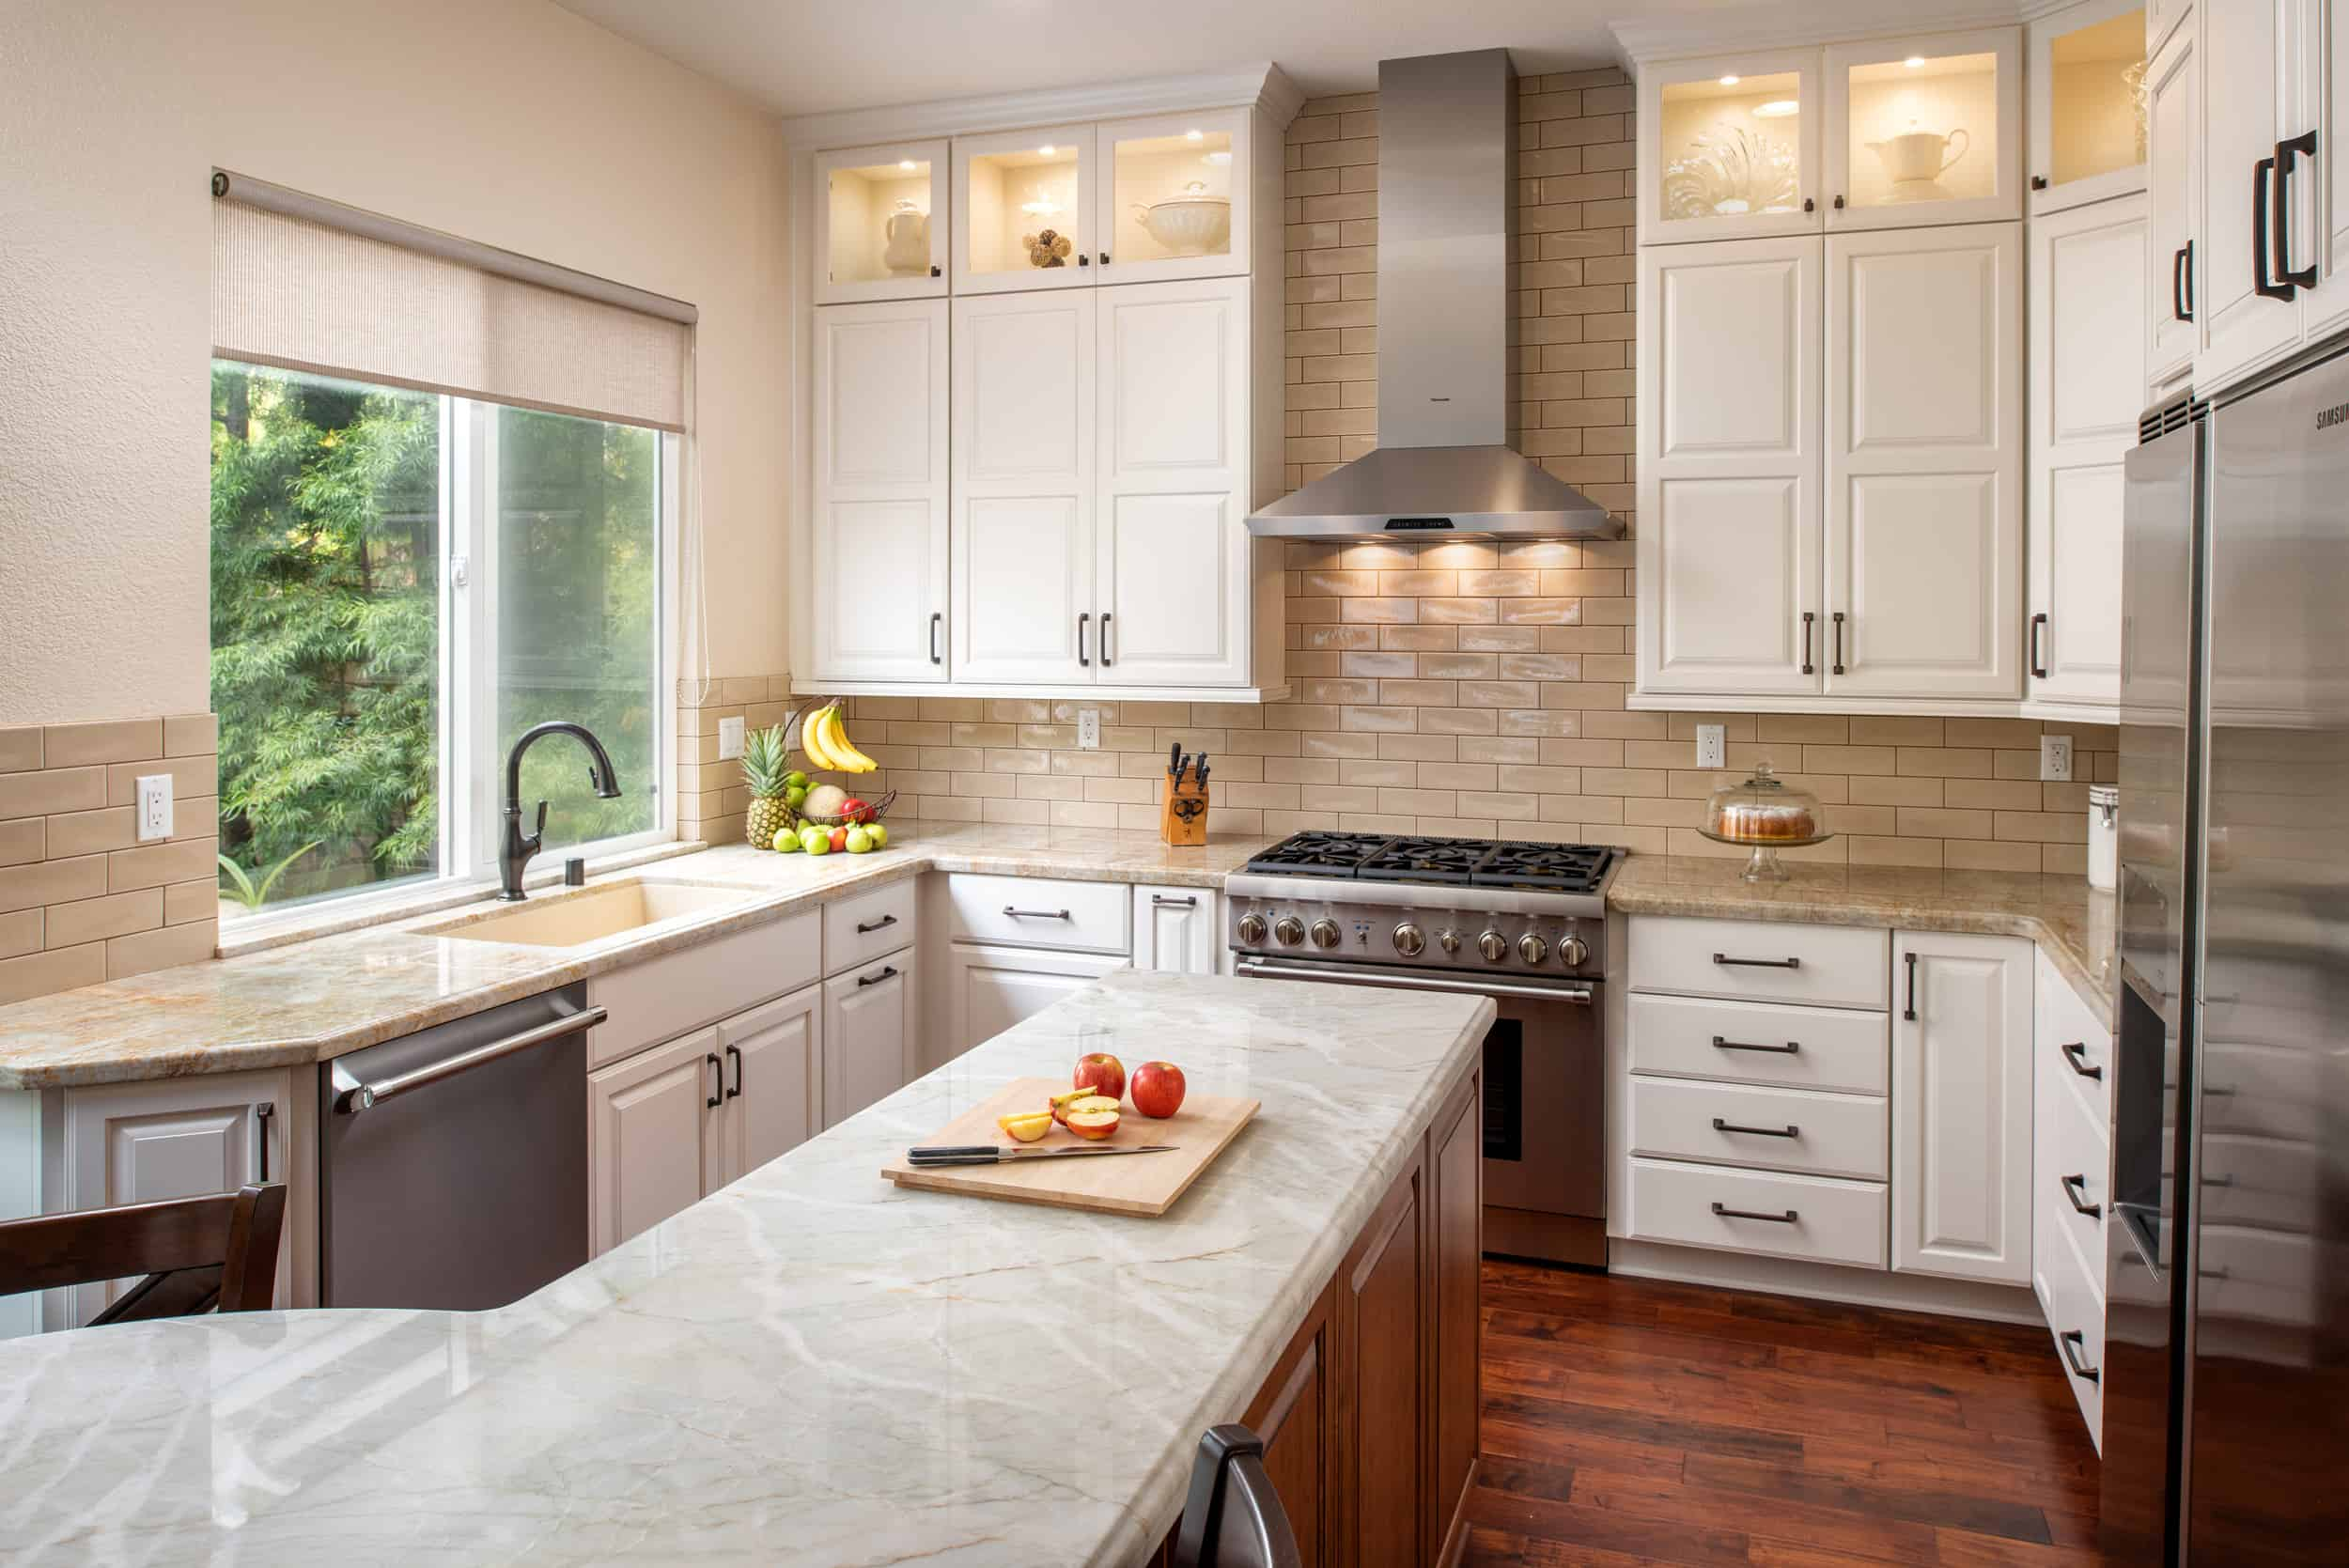 Kitchen Renovation Kitchen Remodeling Design San Diego Remodel Works